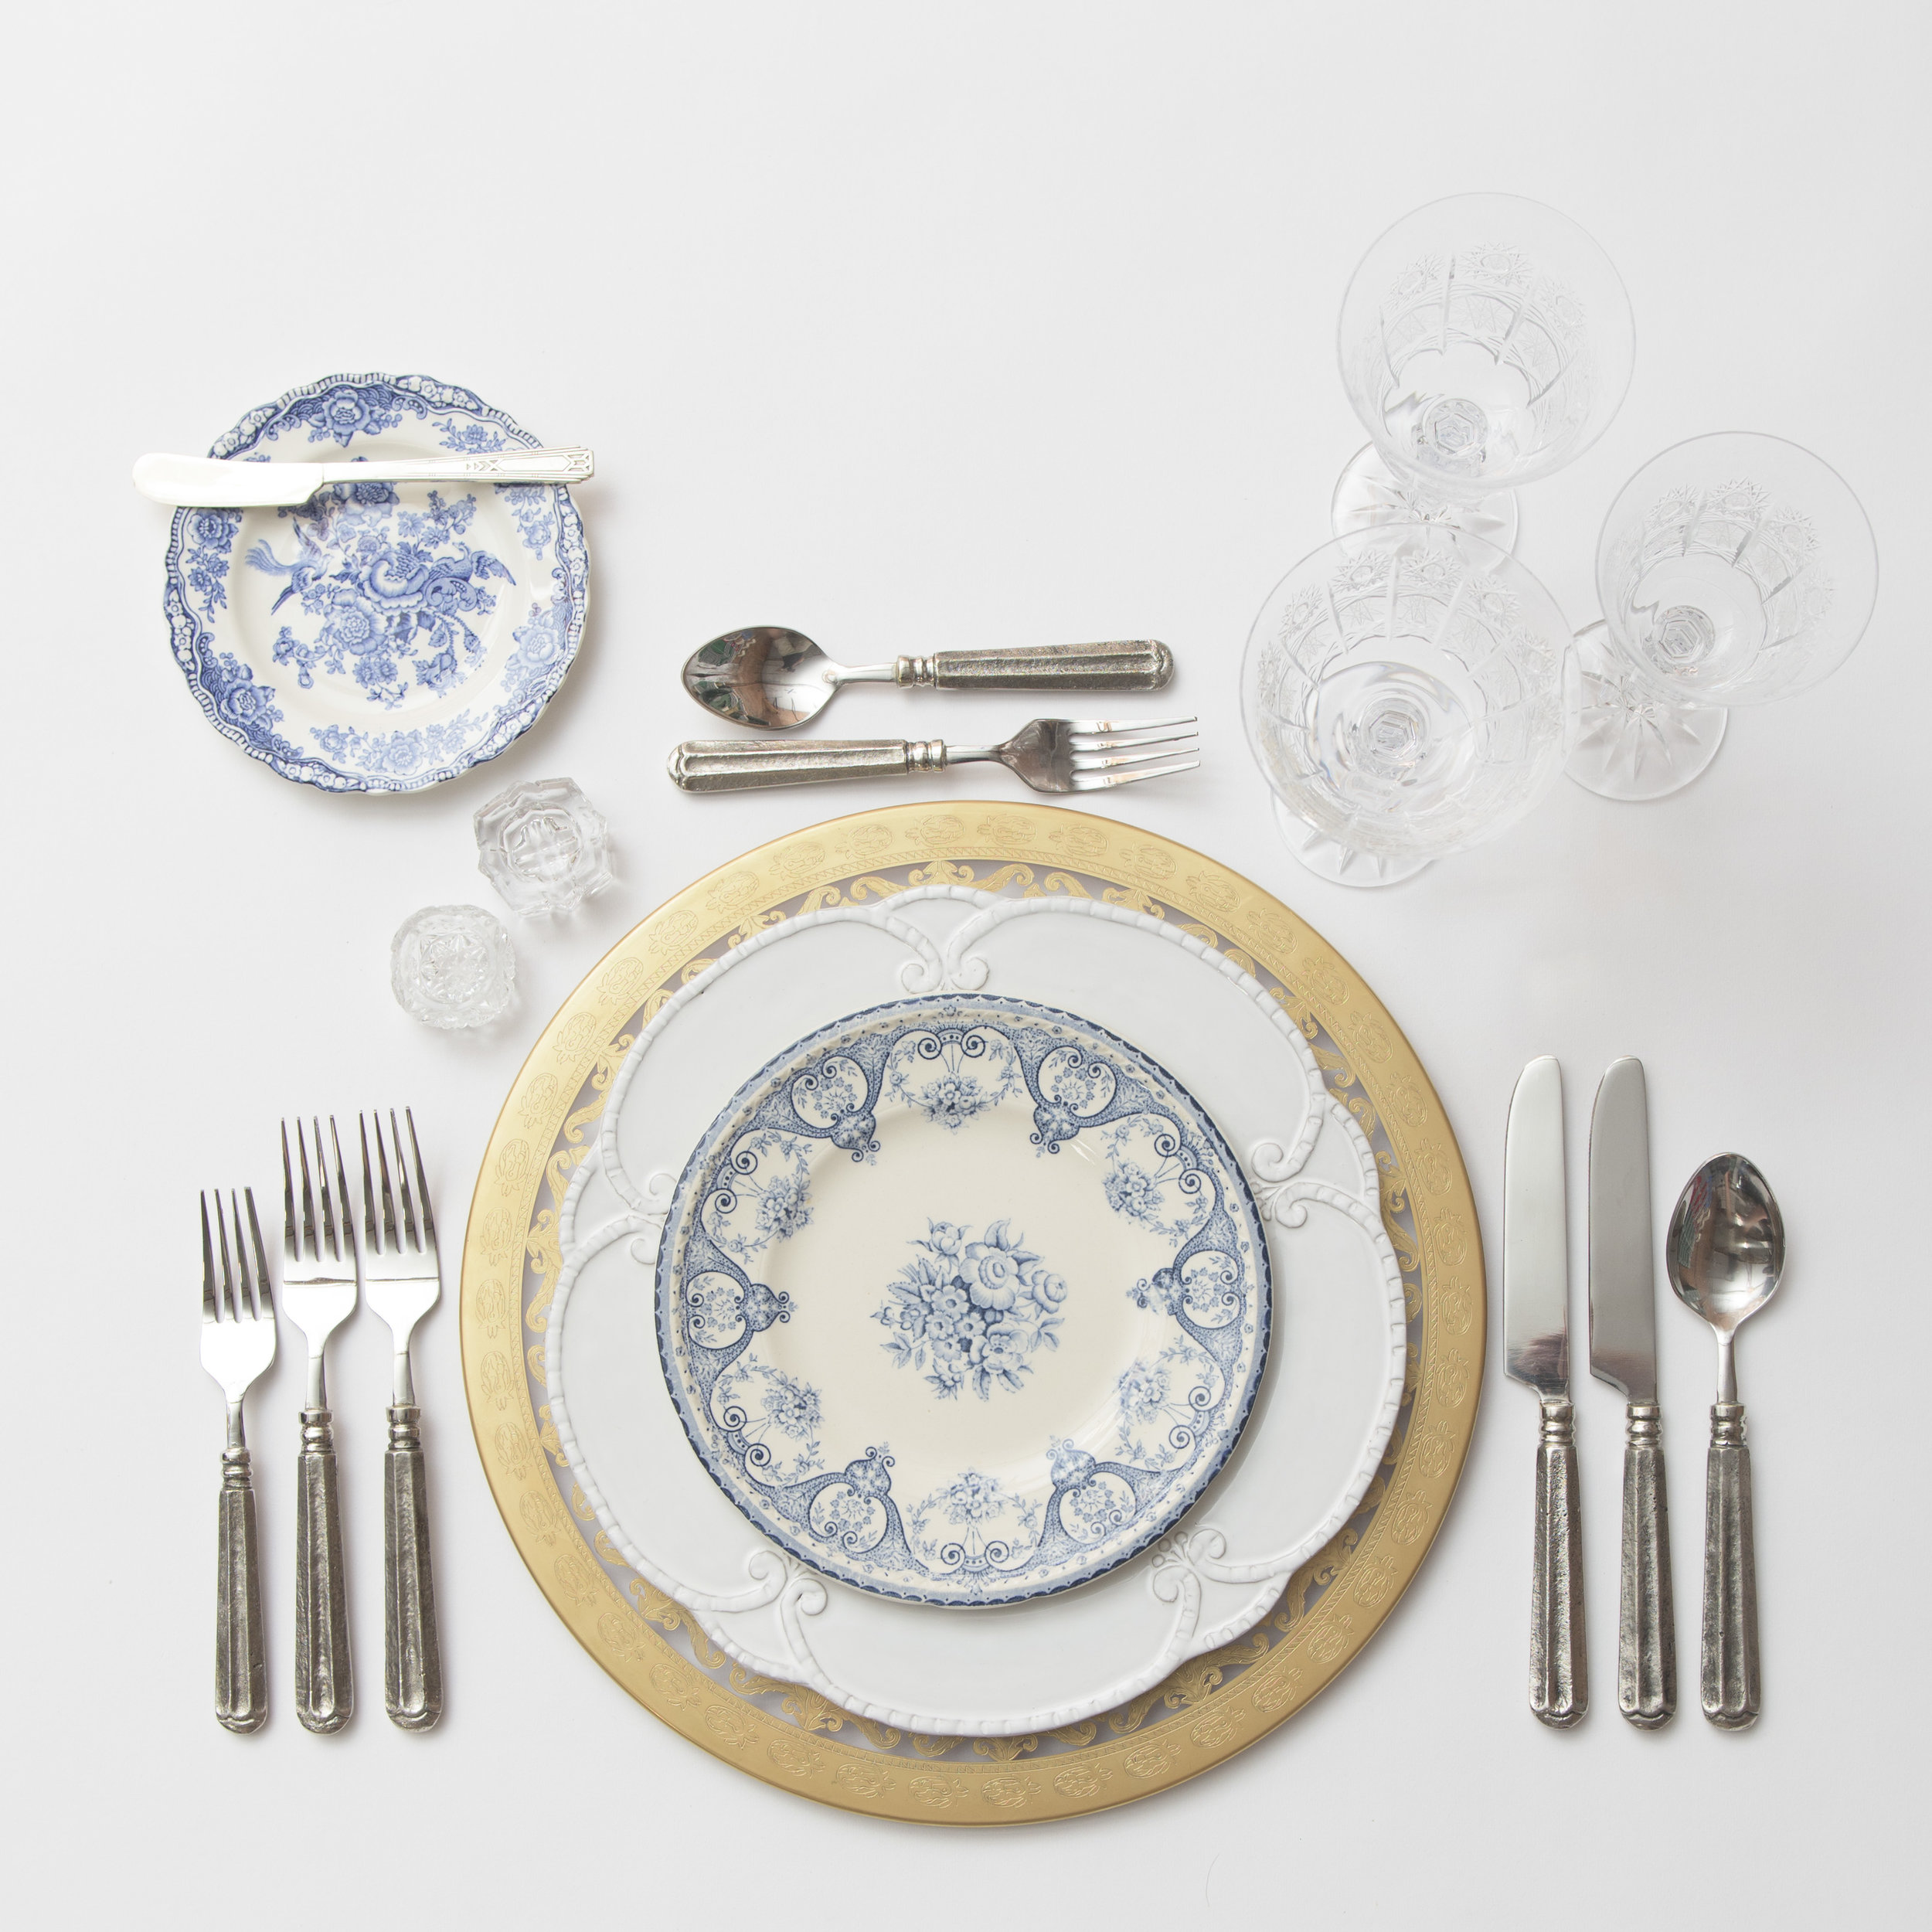 RENT: Versailles Glass Chargers in 24k Gold + Signature Collection Dinnerware +Blue Garden Collection Vintage China + Tuscan Flatware in Pewter + Czech Crystal Stemware + Antique Crystal Salt Cellars